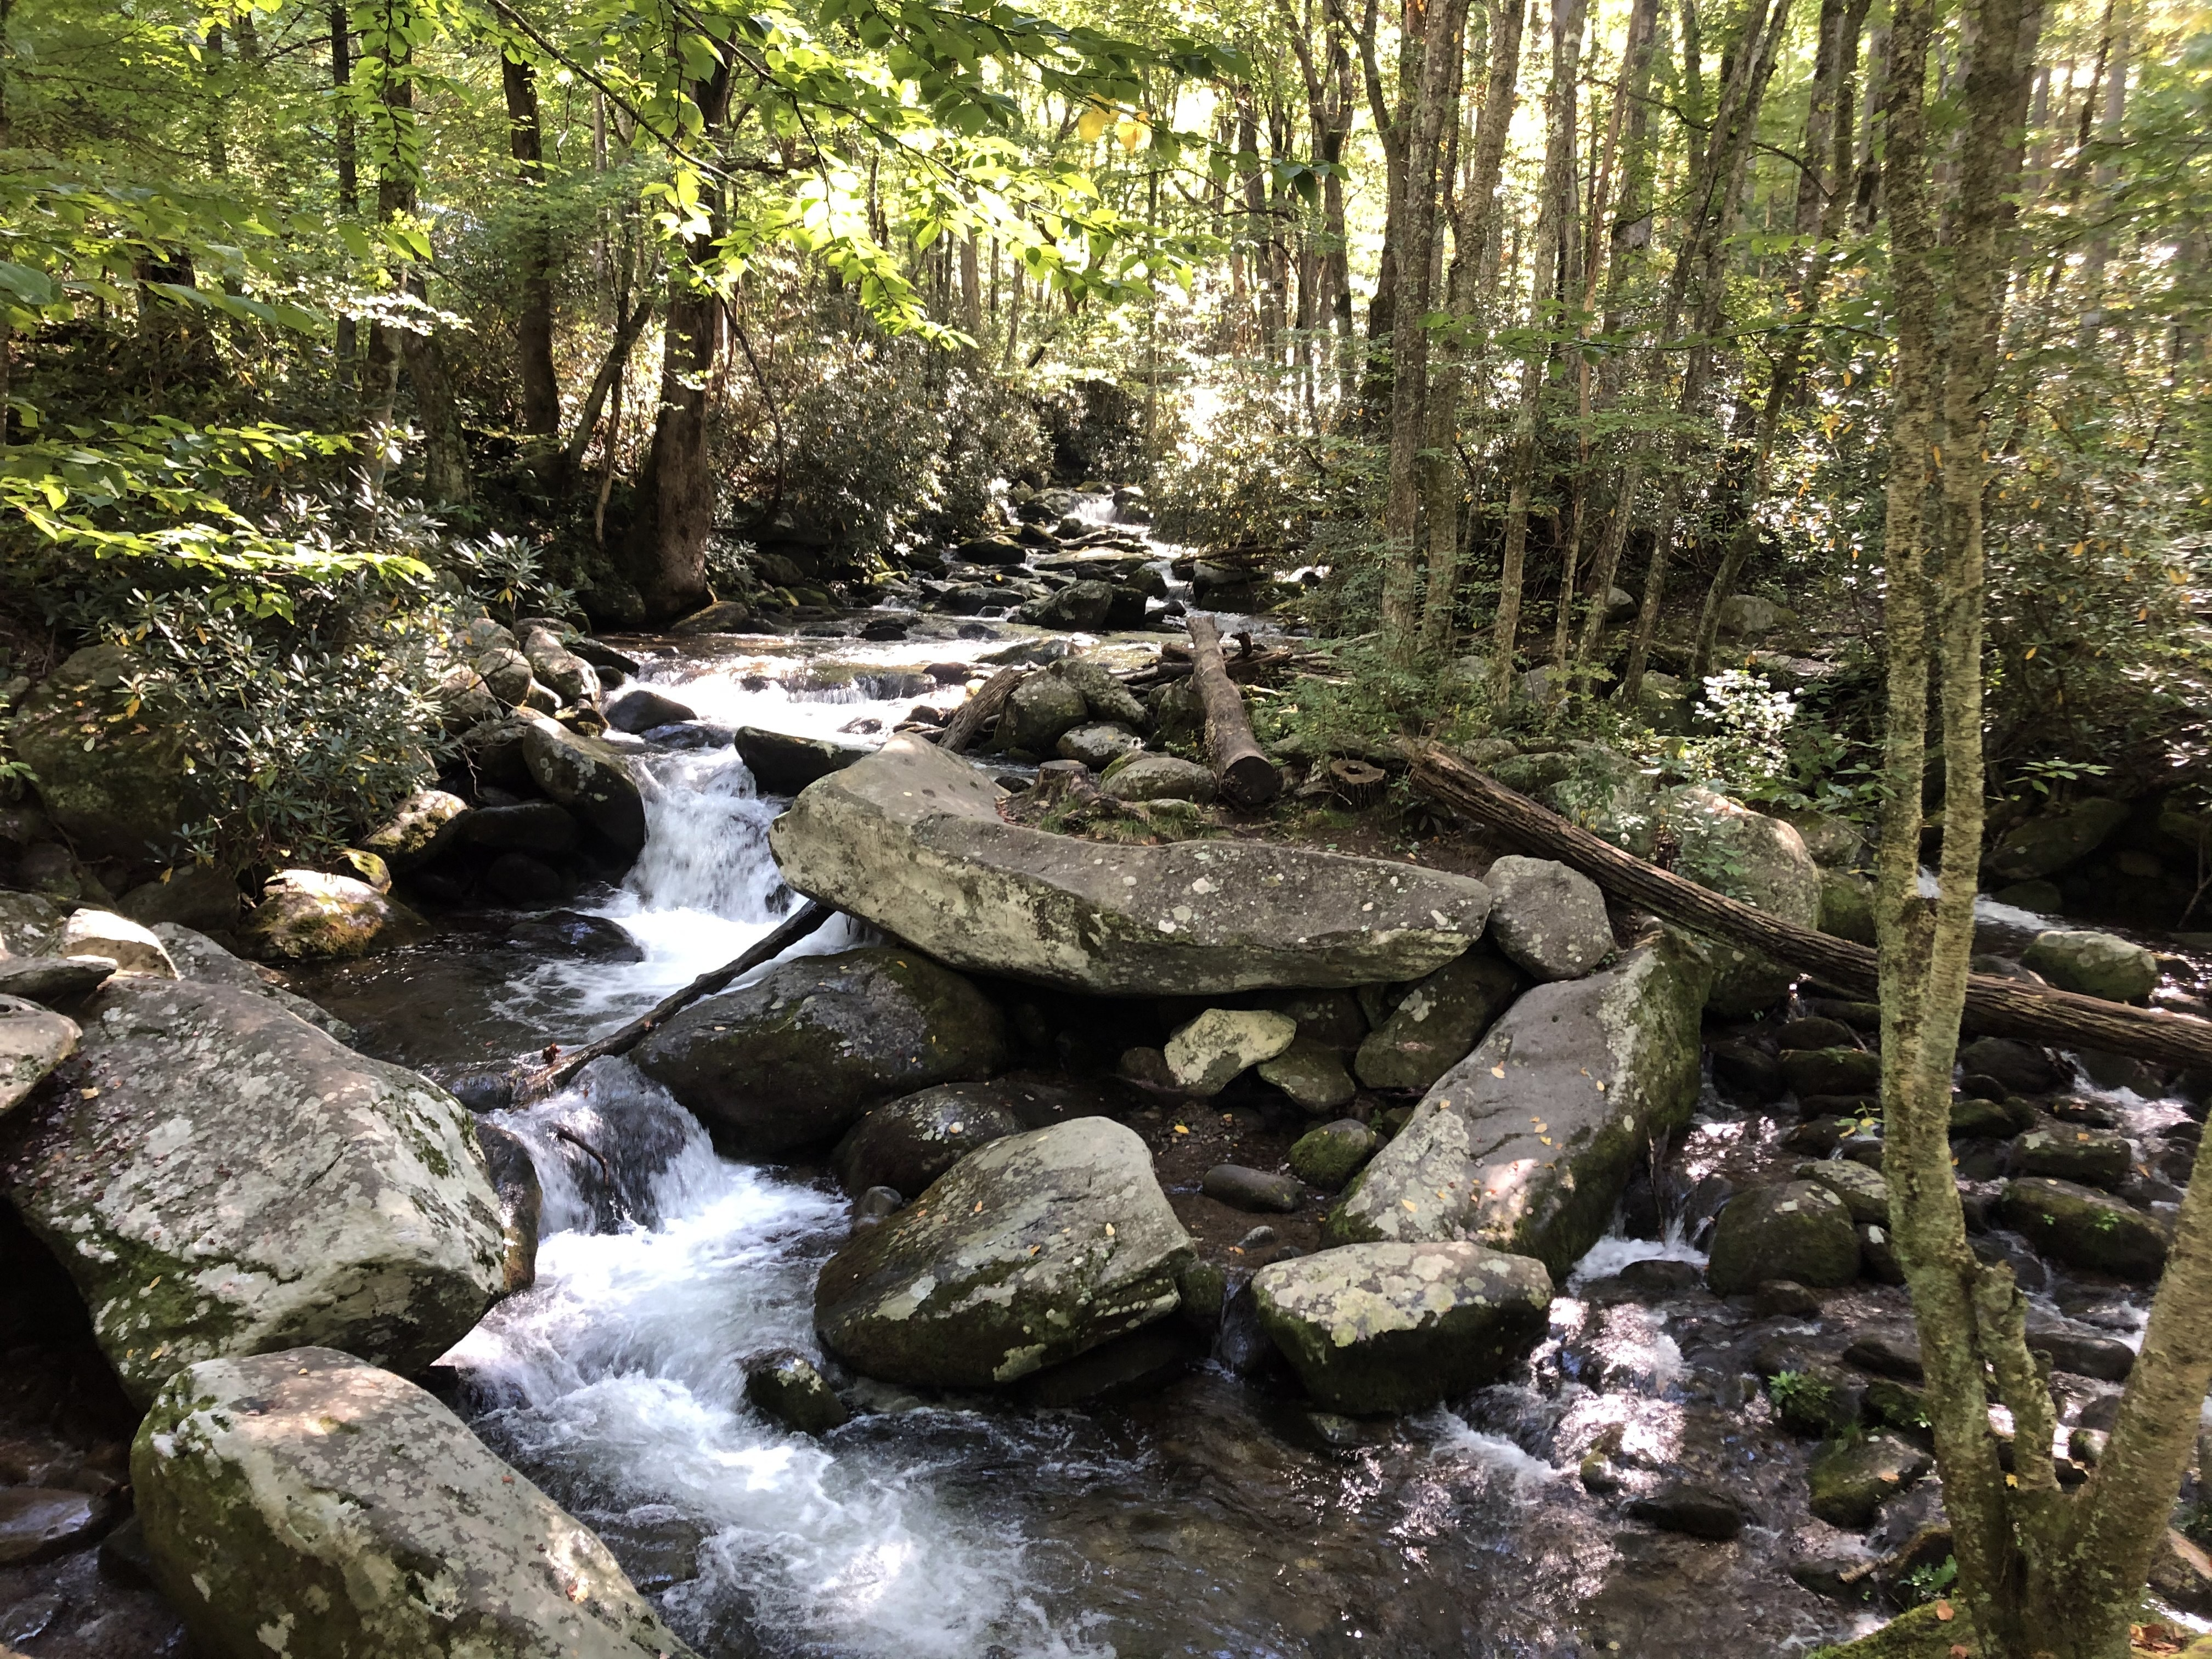 A view along Roaring Fork Motor Nature Trail